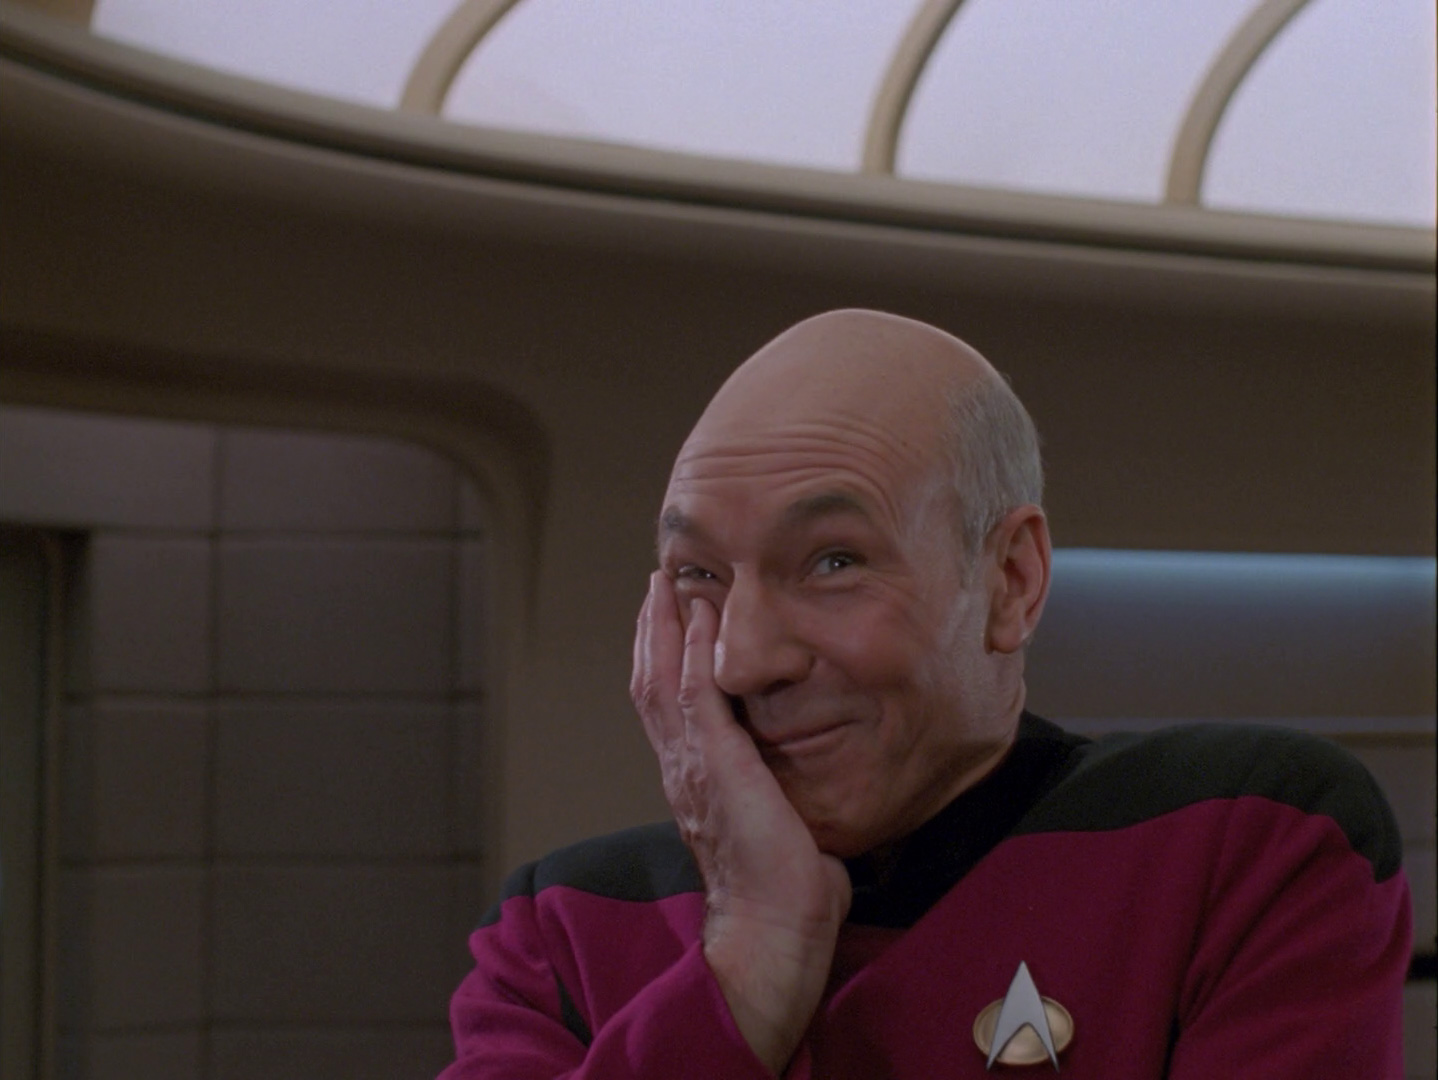 http://orl.ec/images/Facepalm-picard-gif-i4.jpg